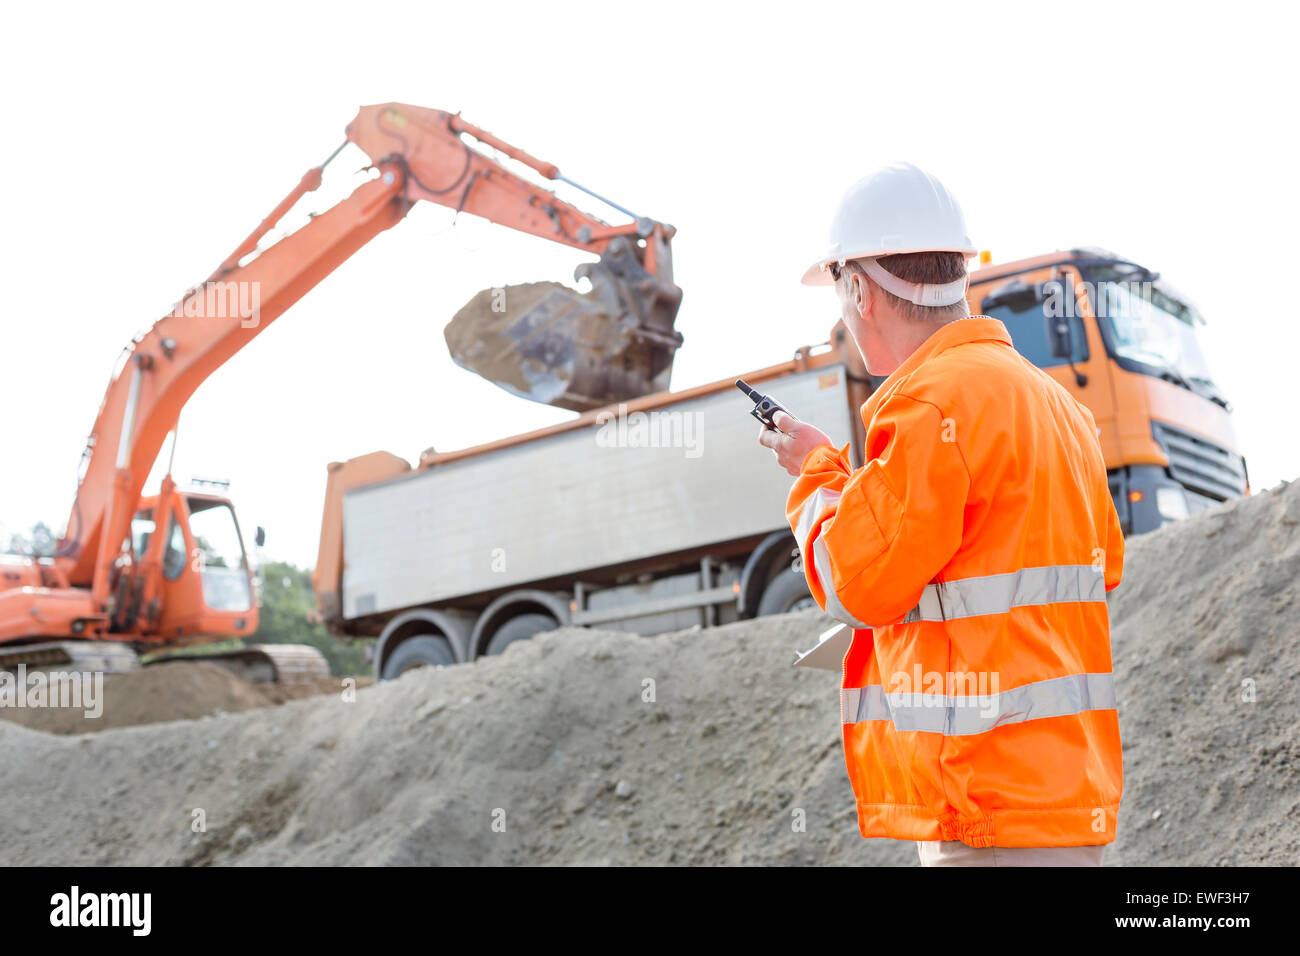 Side view of architect using walkie-talkie while working at construction site - Stock Image